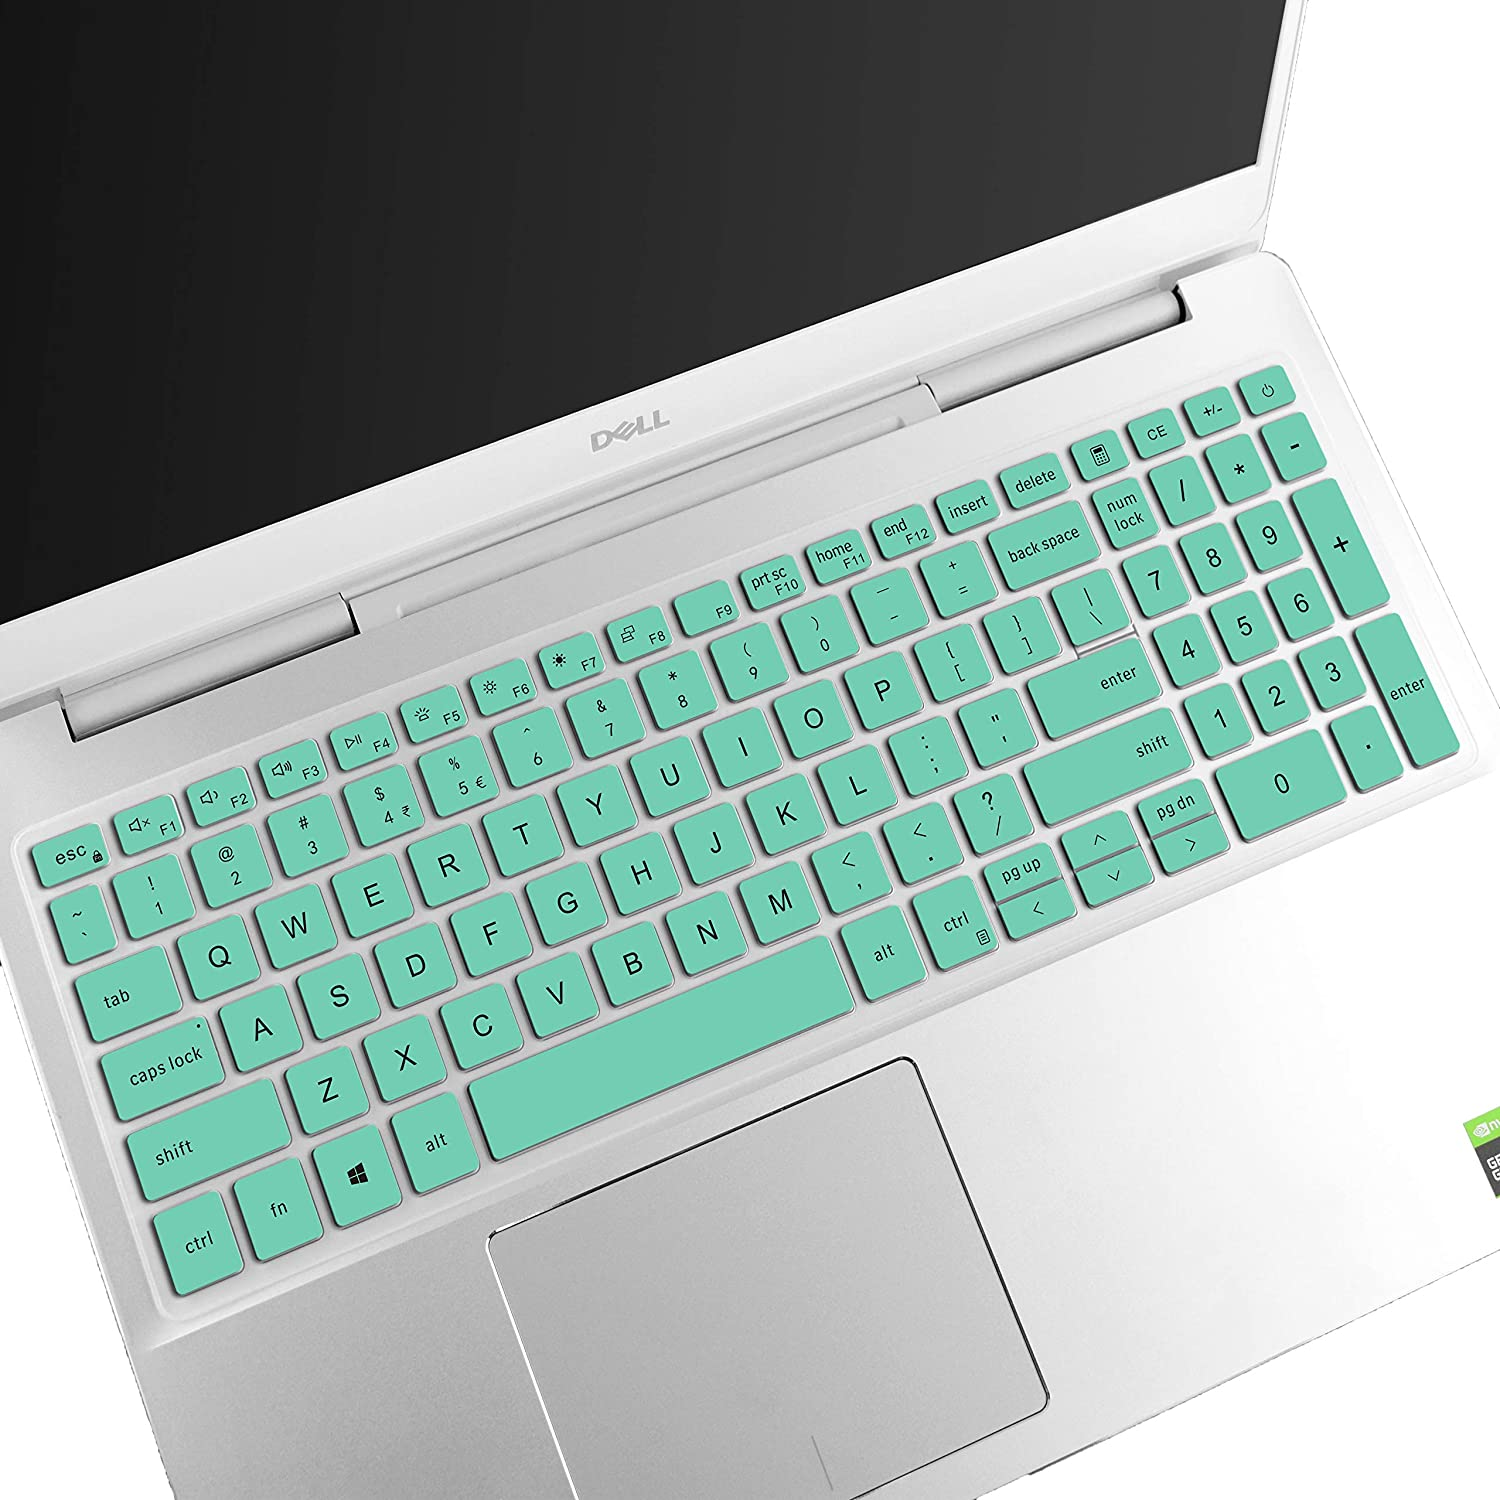 Keyboard Cover Compatible with Dell Inspiron 15 7000 7590 7591 7500 75017506 i7506 7706 i7706, Inspiron 15 5501 5508 5584 5590 5593 5598, Vostro 15 7590 7591 5590 7500 Laptop US Layout - Mint